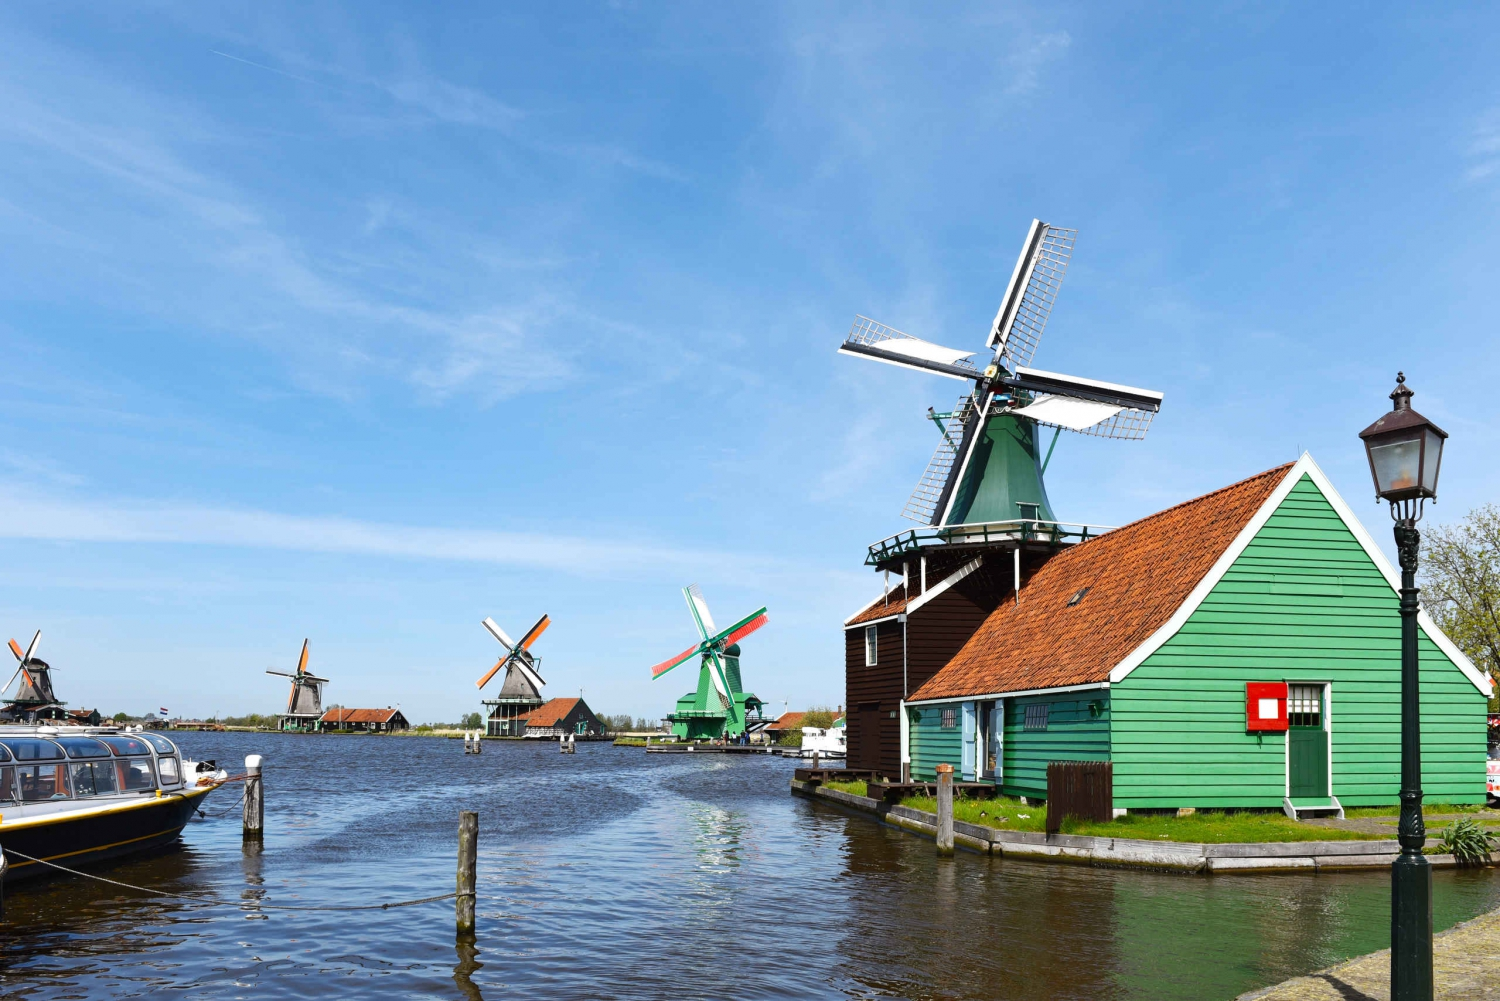 Half-Day Zaanse Schans Tour and Canal Tour